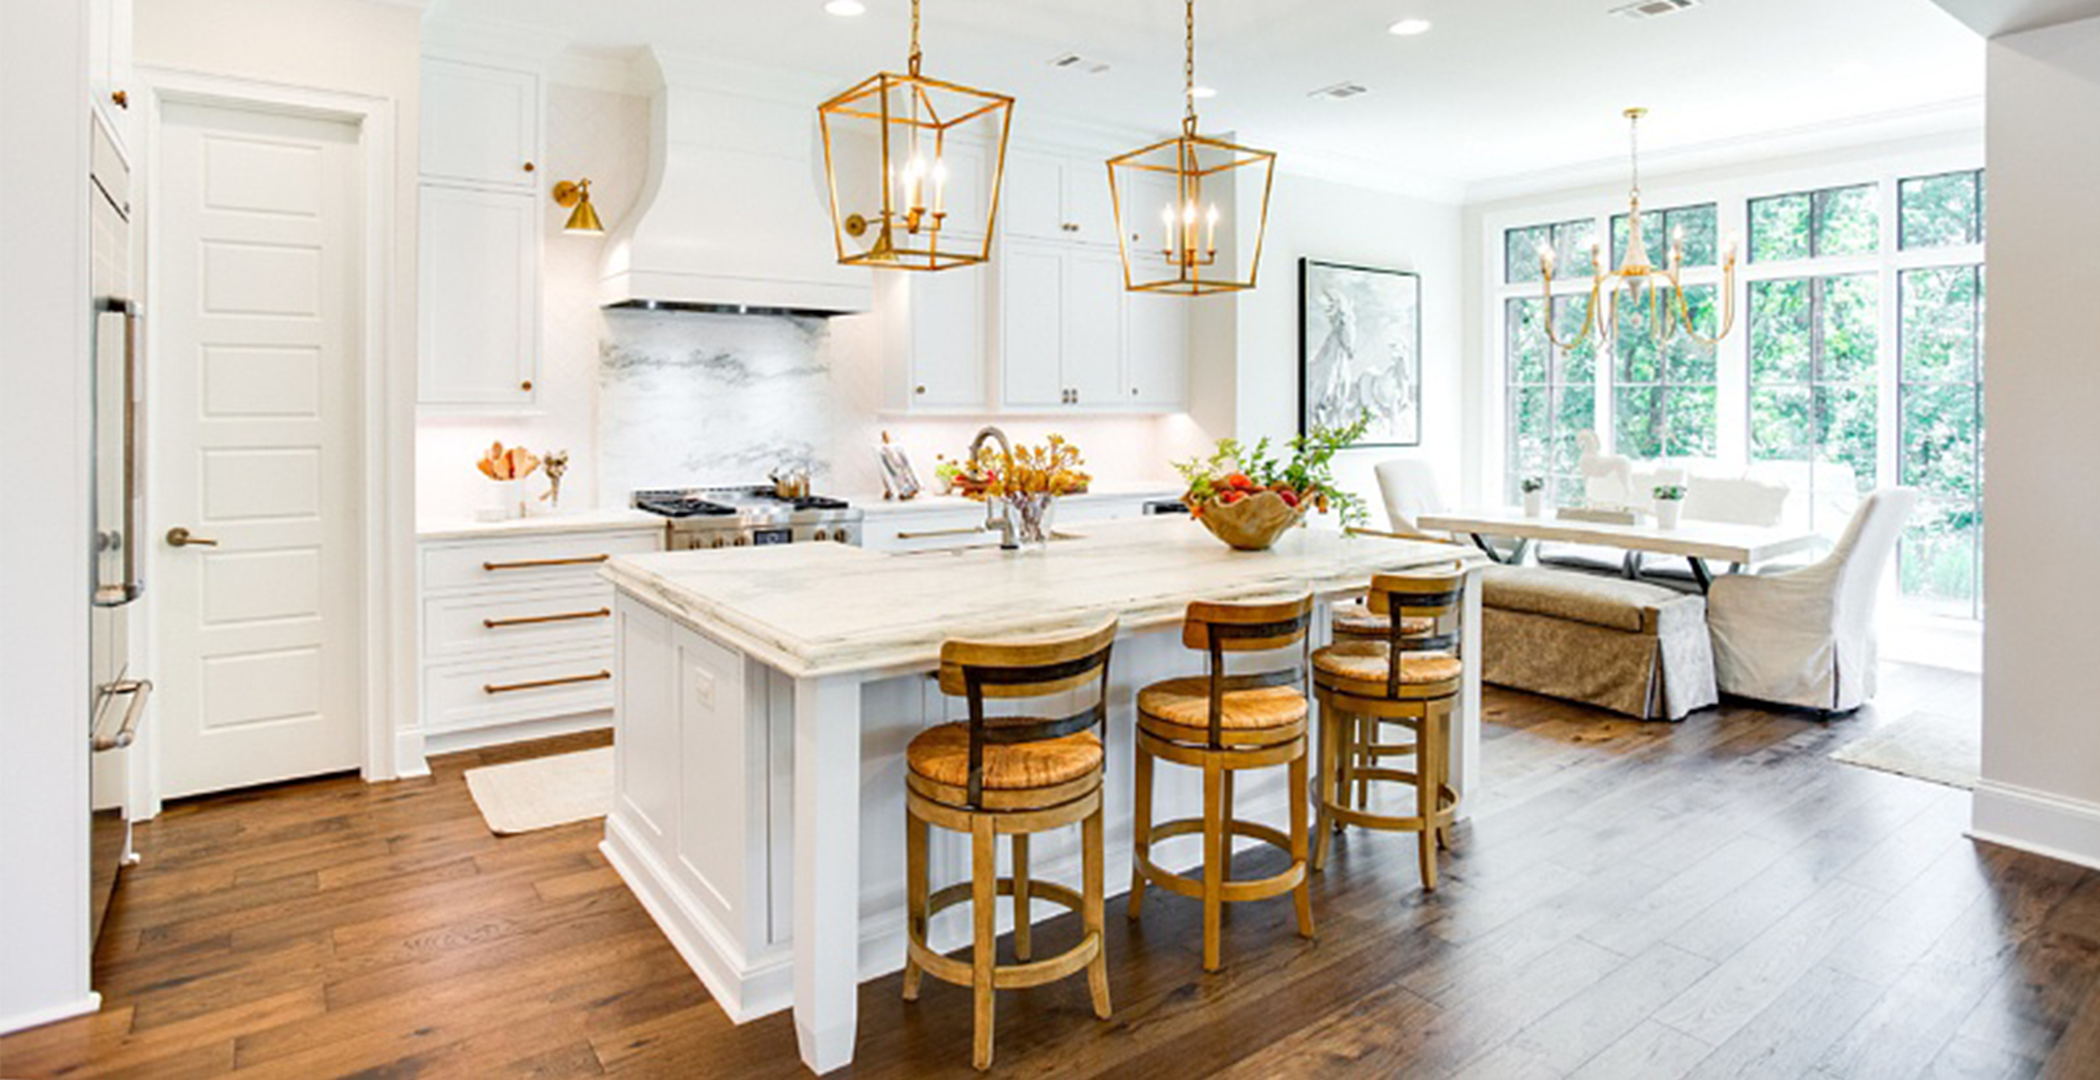 This image features Hallmark Floors' Novella - Eliot flooring. The kitchen and home was designed by Jay Younn of Toulmin Cabinetry